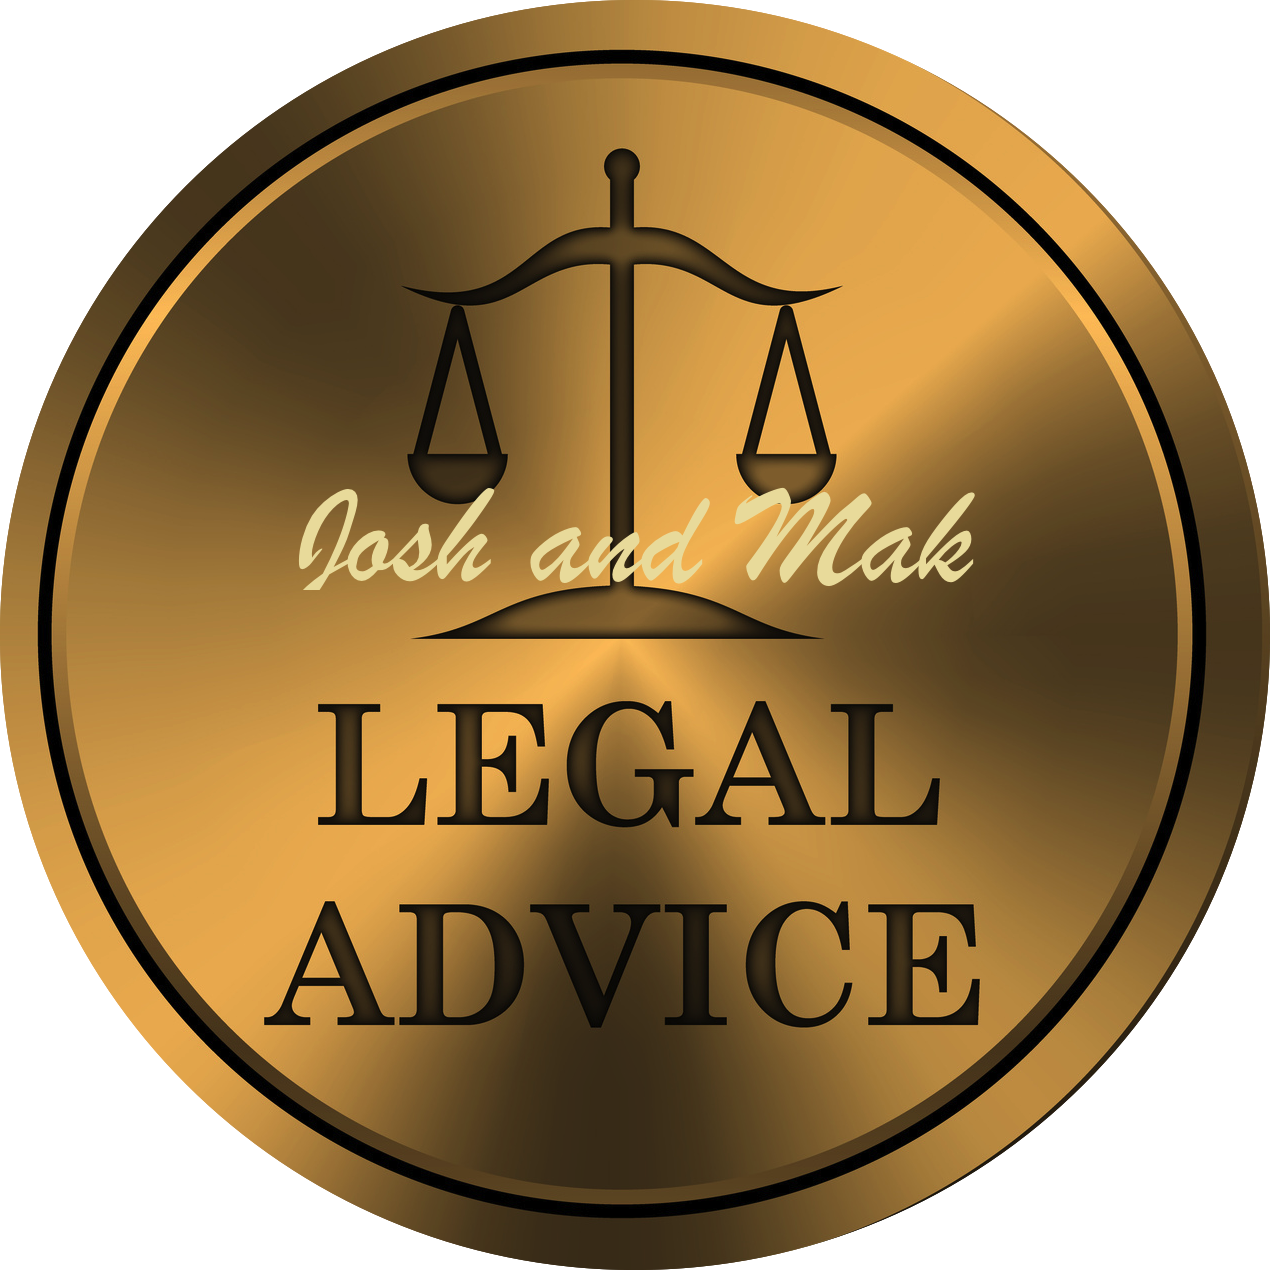 LOOKING FOR FREE LEGAL ADVICE?